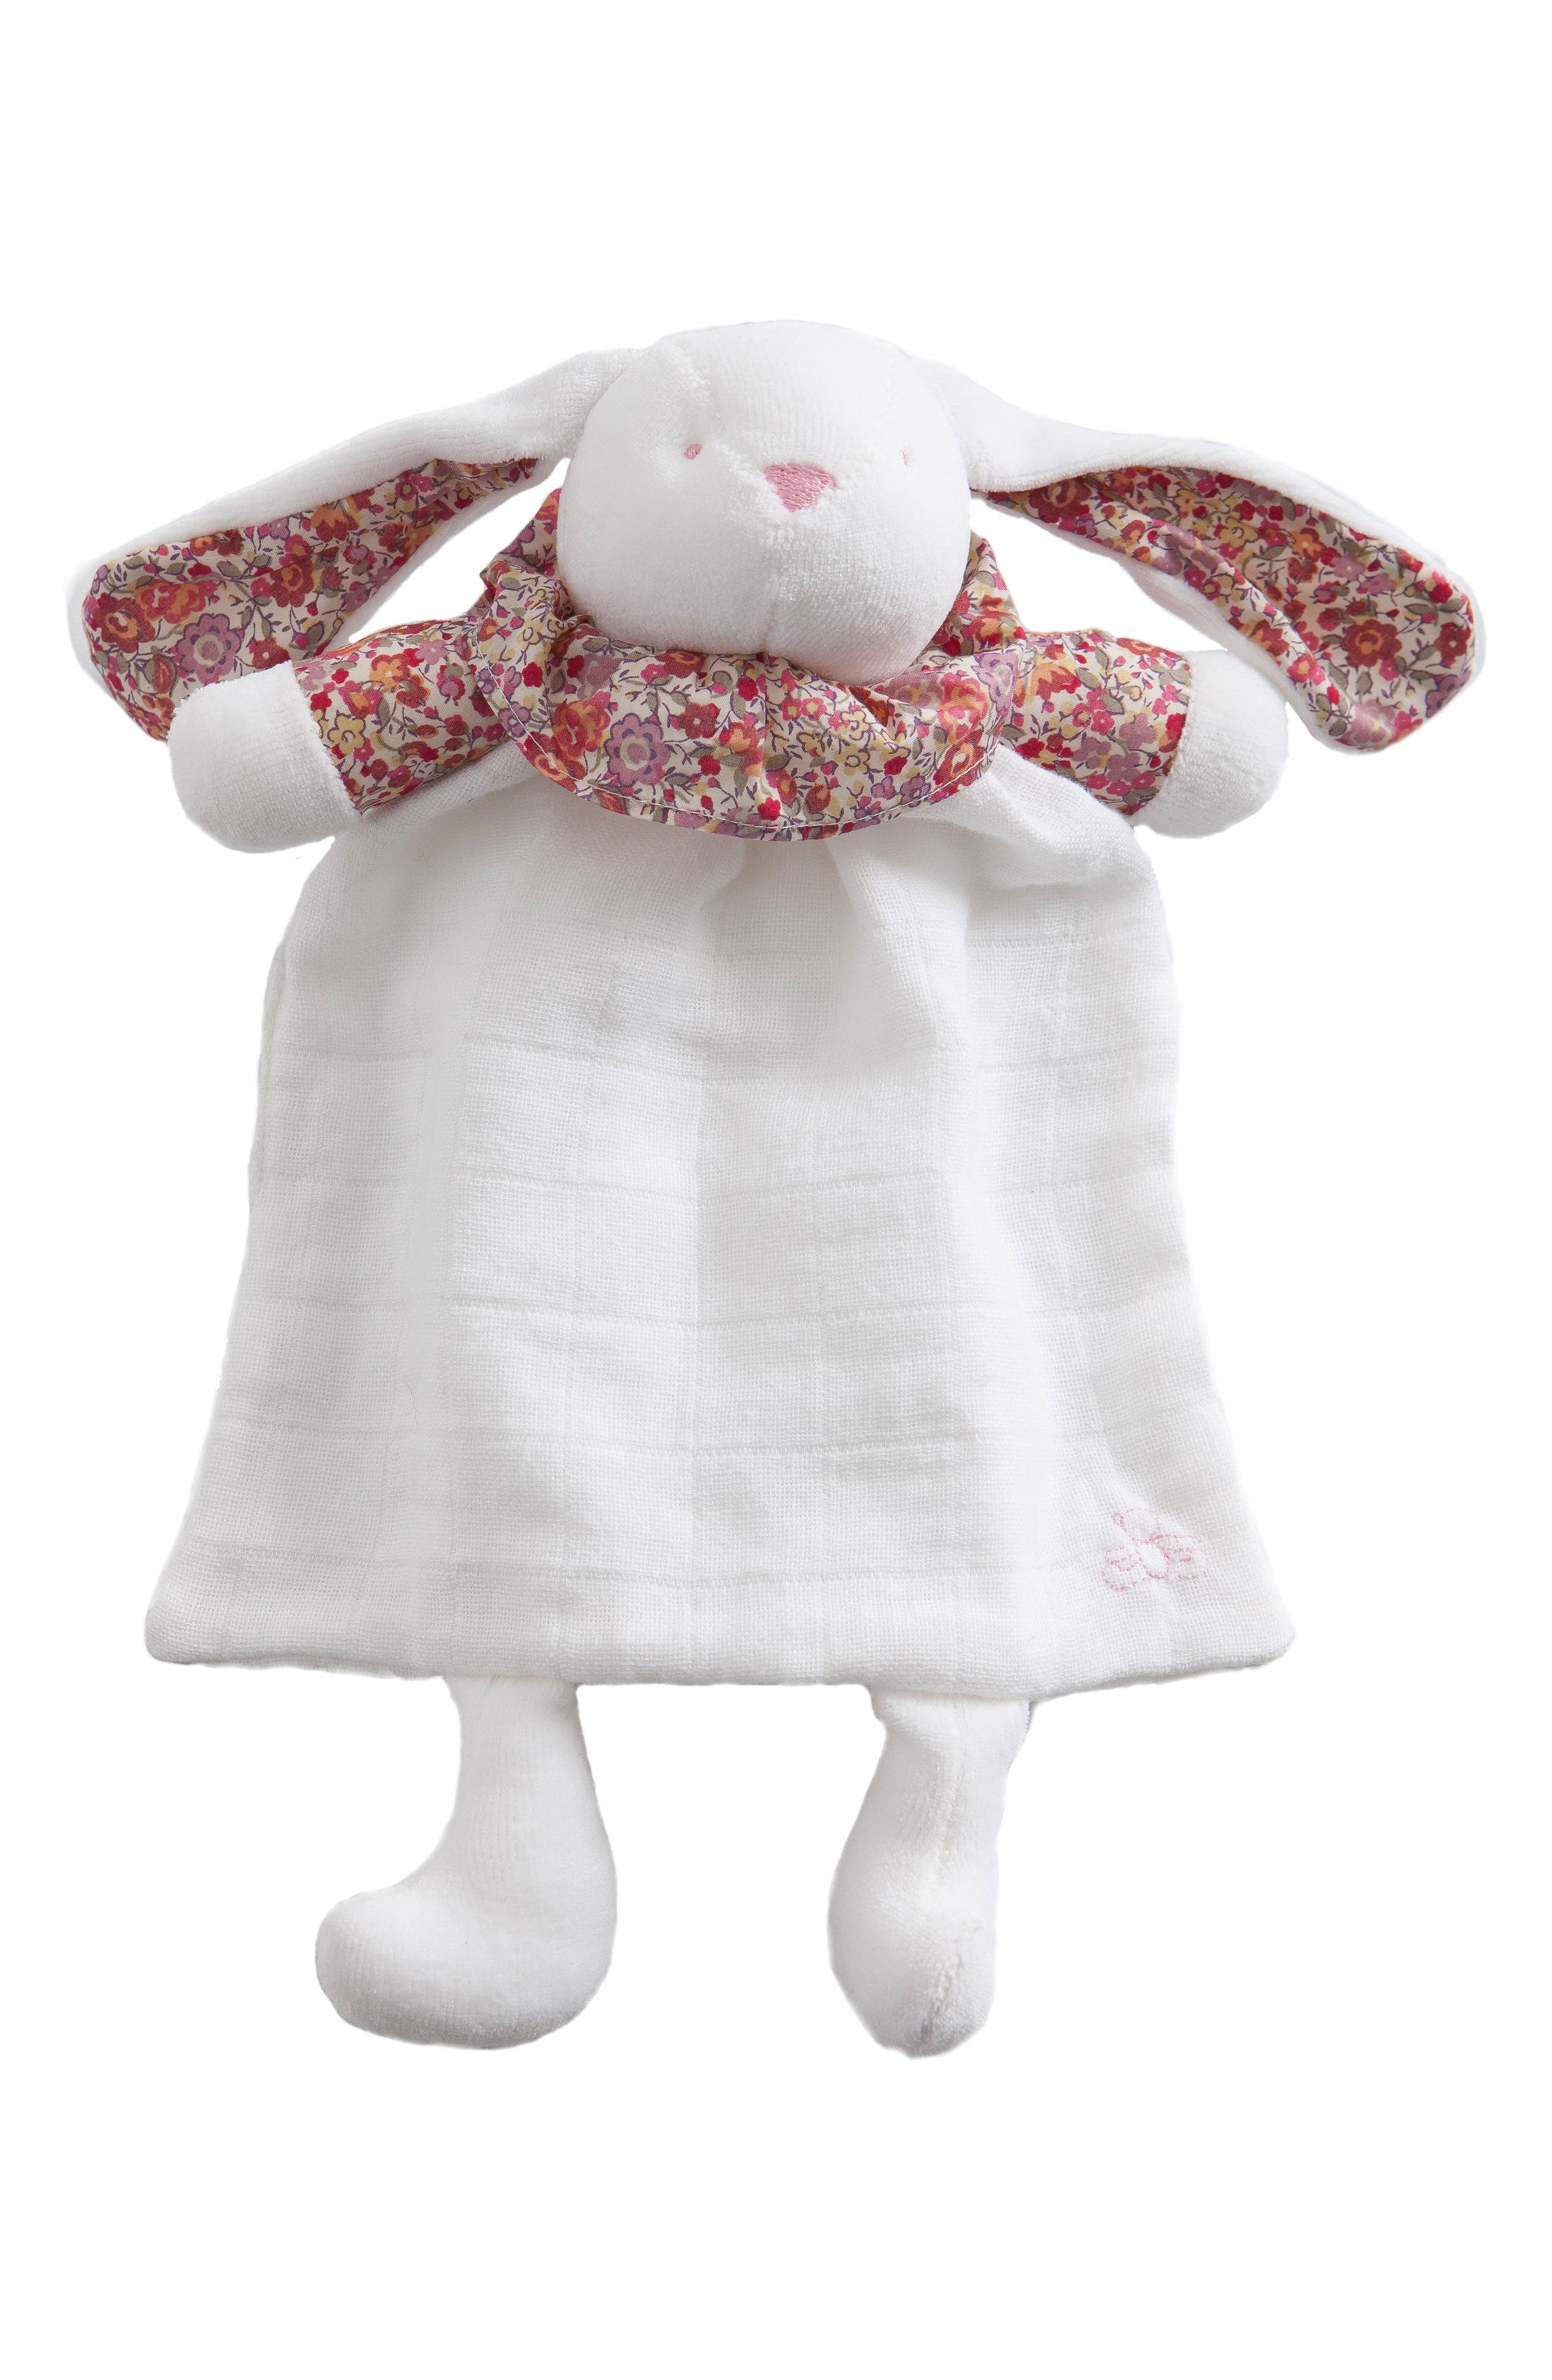 Pamplemousse Peluches x Liberty of London Rabbit Lovey Toy